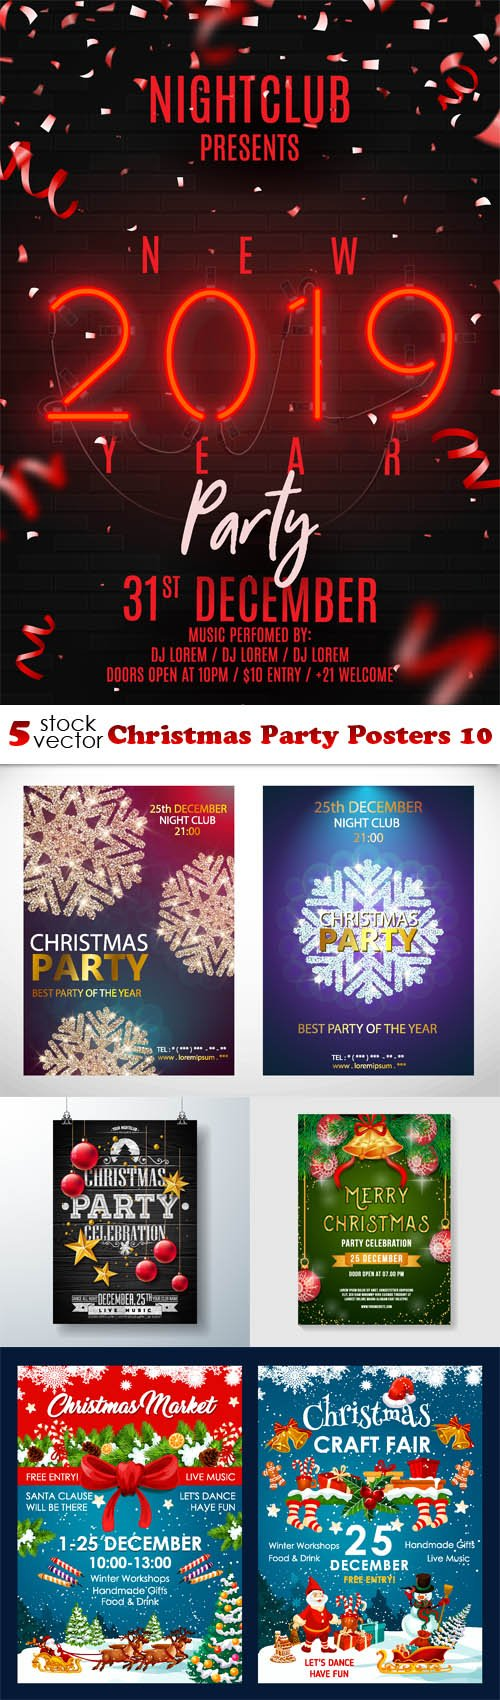 Vectors - Christmas Party Posters 10